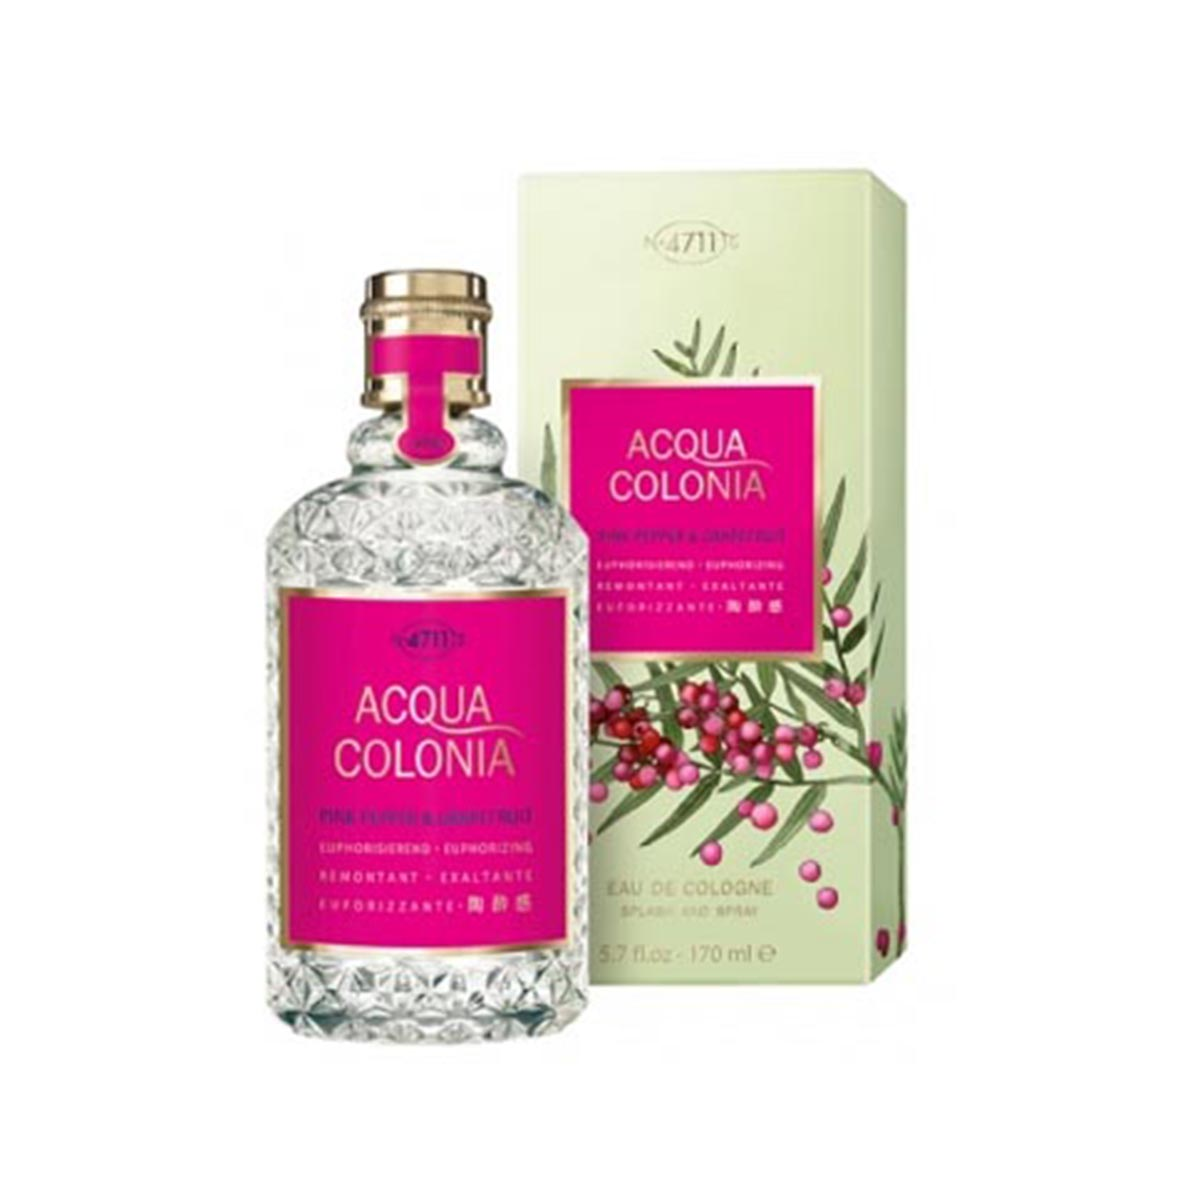 4711 acqua colonia pink pepper grapefruit eau de cologne 170ml vaporizador